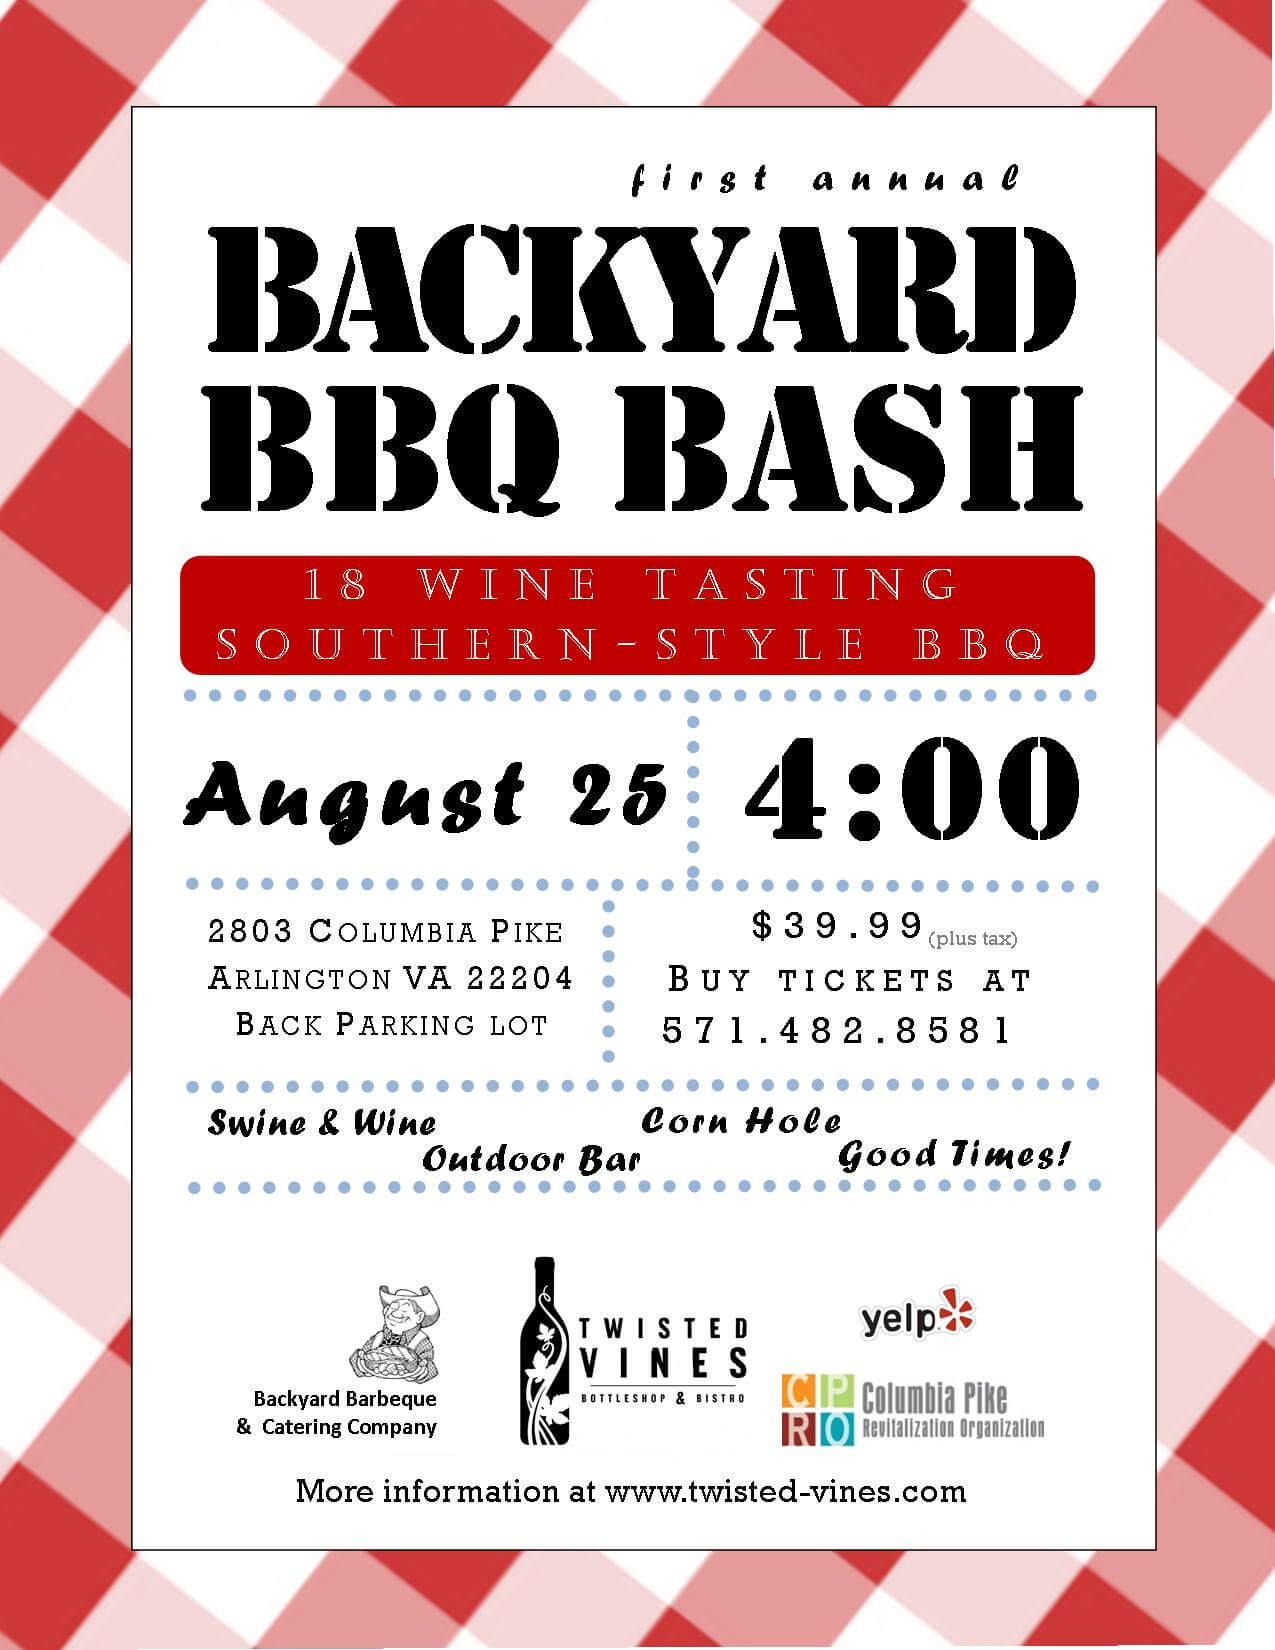 031 Bbq Fundraiser Flyer Template Images Plate Ideas Free In Bbq Fundraiser Flyer Template